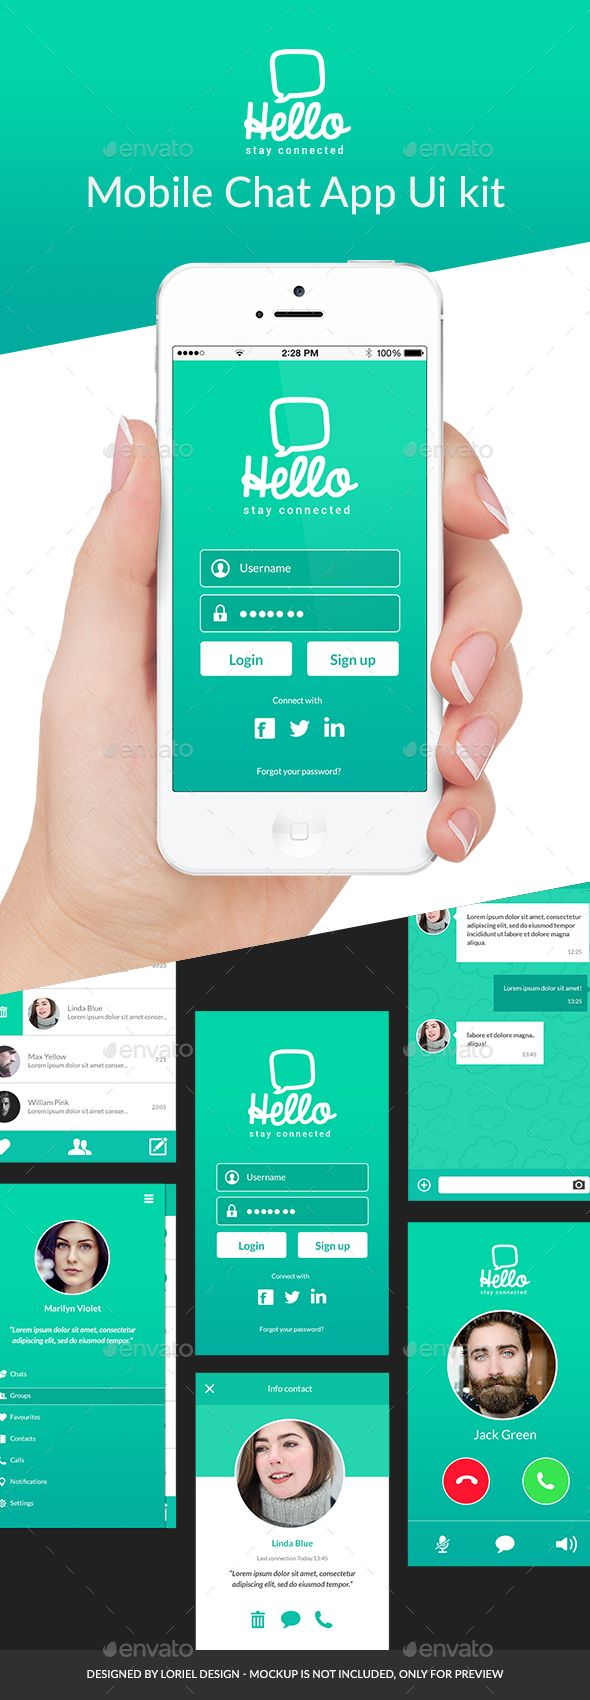 Hello - Mobile Chat App Ui kit - #User #Interfaces #Web Elements Download here: https://graphicriver.net/item/hello-mobile-chat-app-ui-kit/19707733?ref=alena994